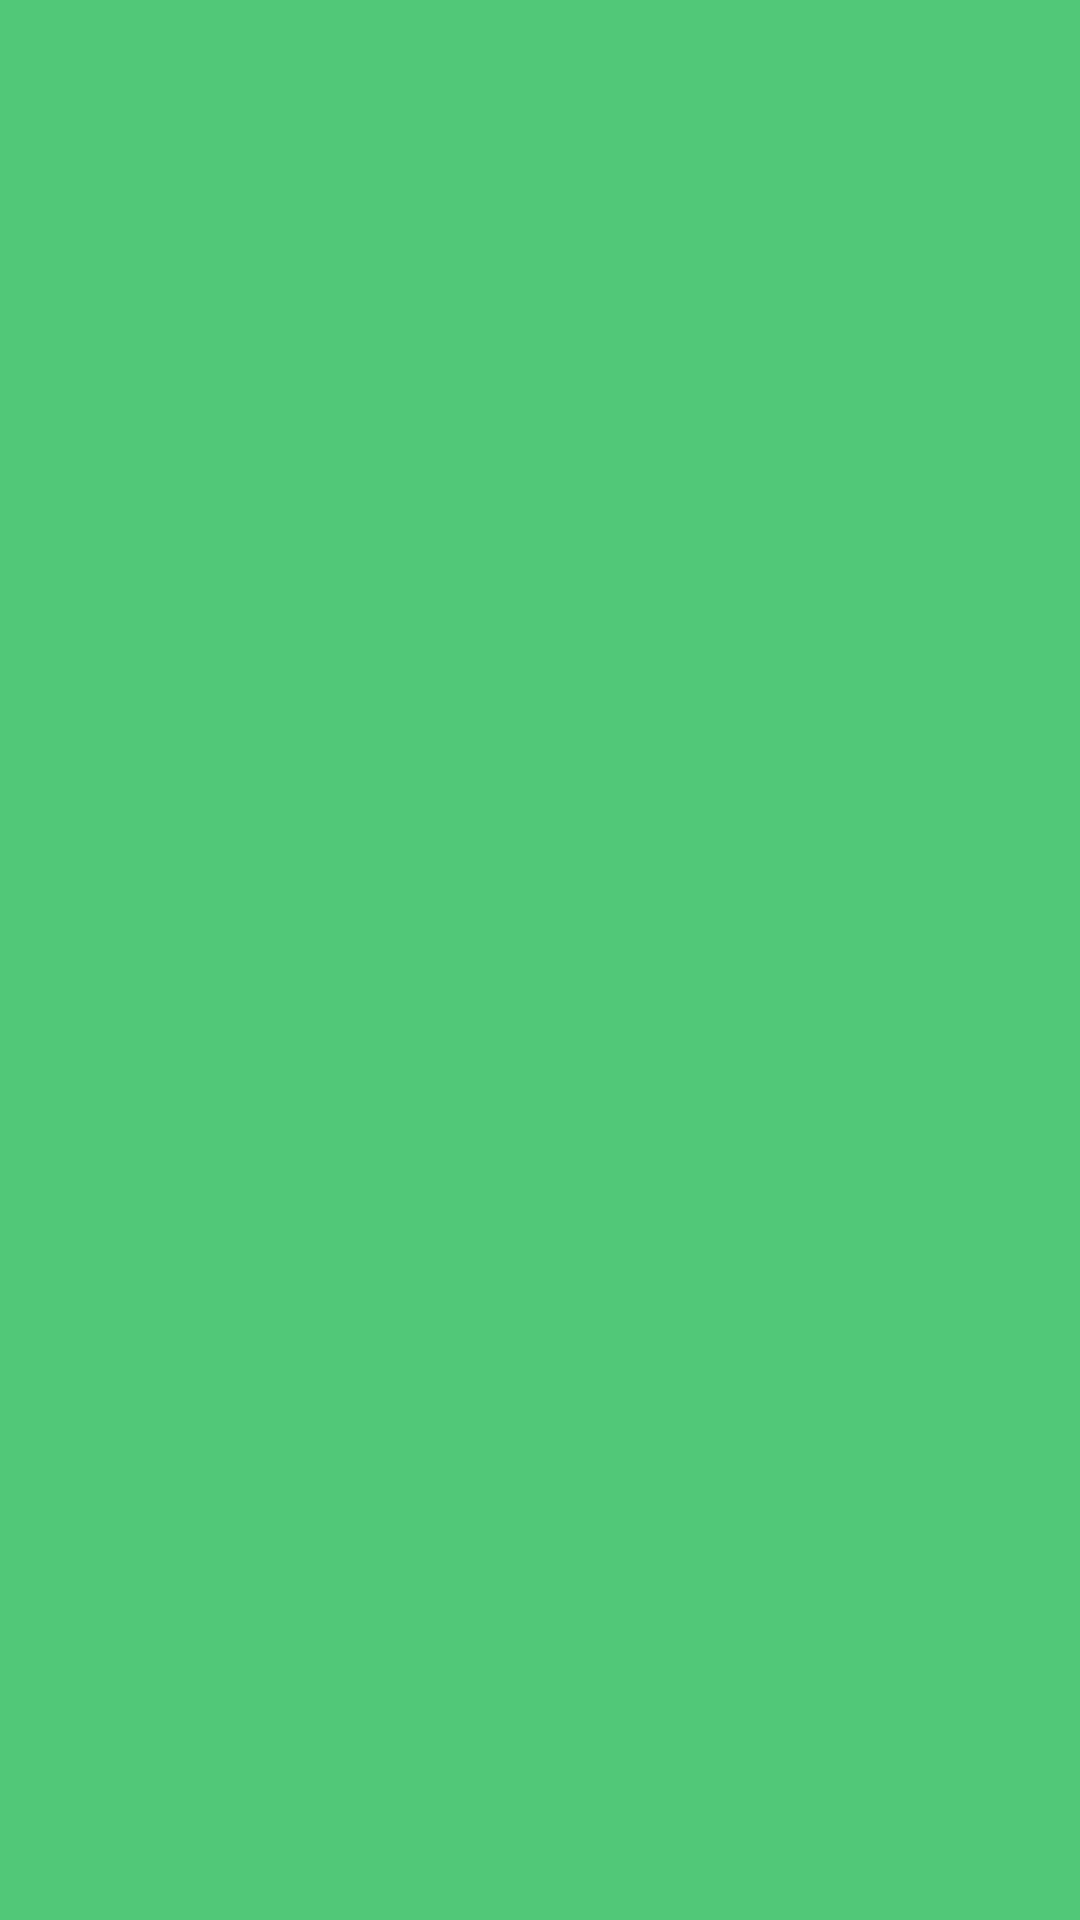 1080x1920 Paris Green Solid Color Background